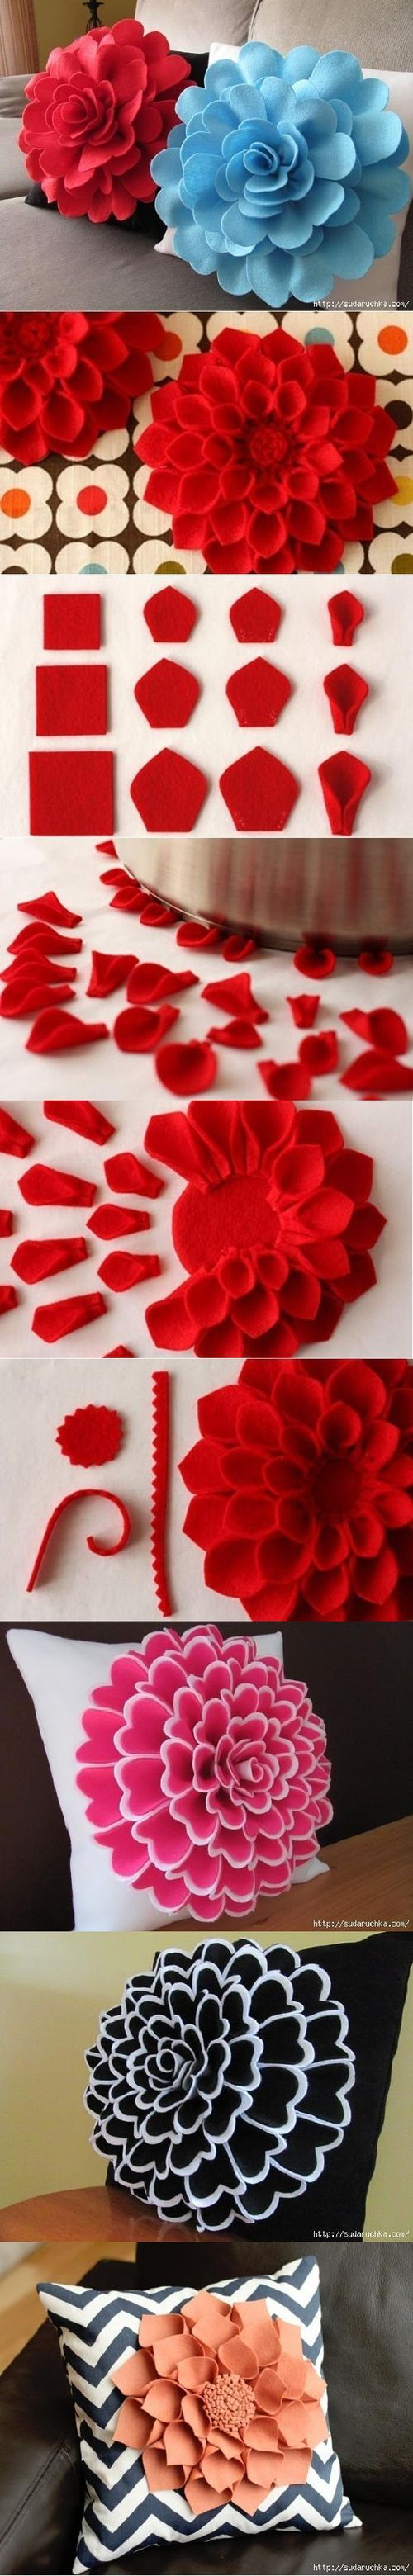 DIY Decorative Felt Flower Pillow DIY Projects / UsefulDIY.com